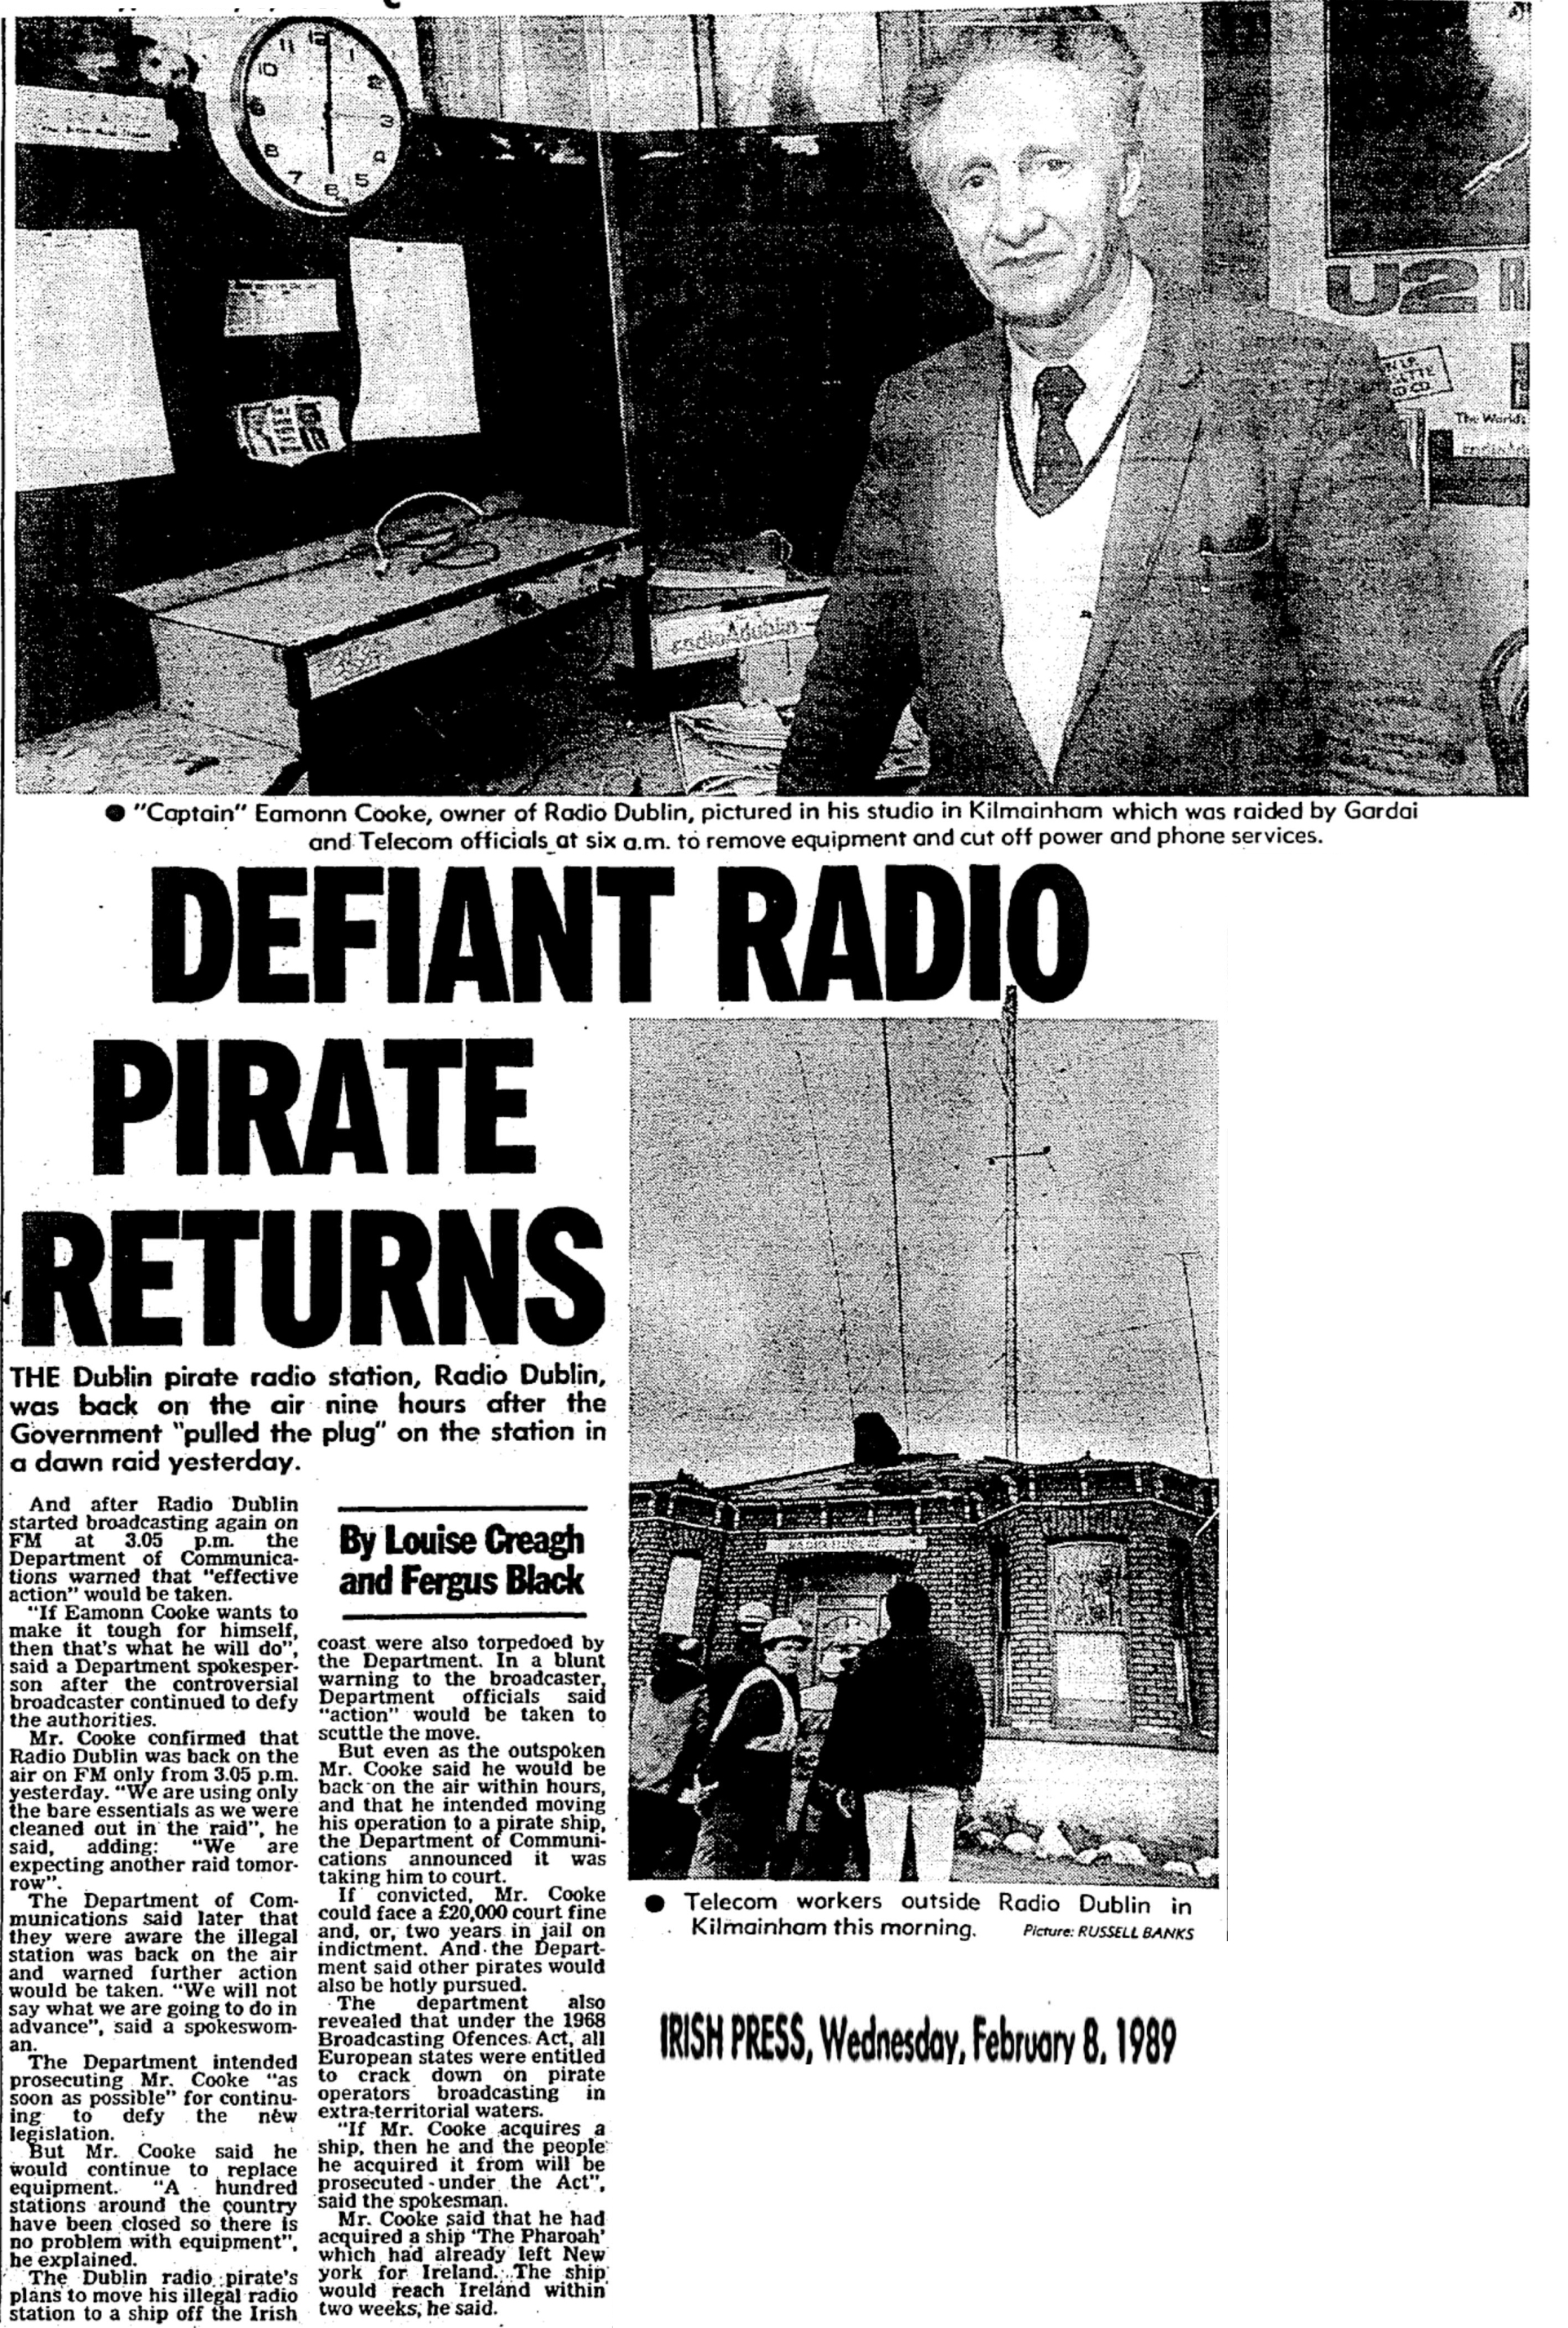 Defiant radio pirate returns was a headline from The Irish Press dated February 8th 1989.